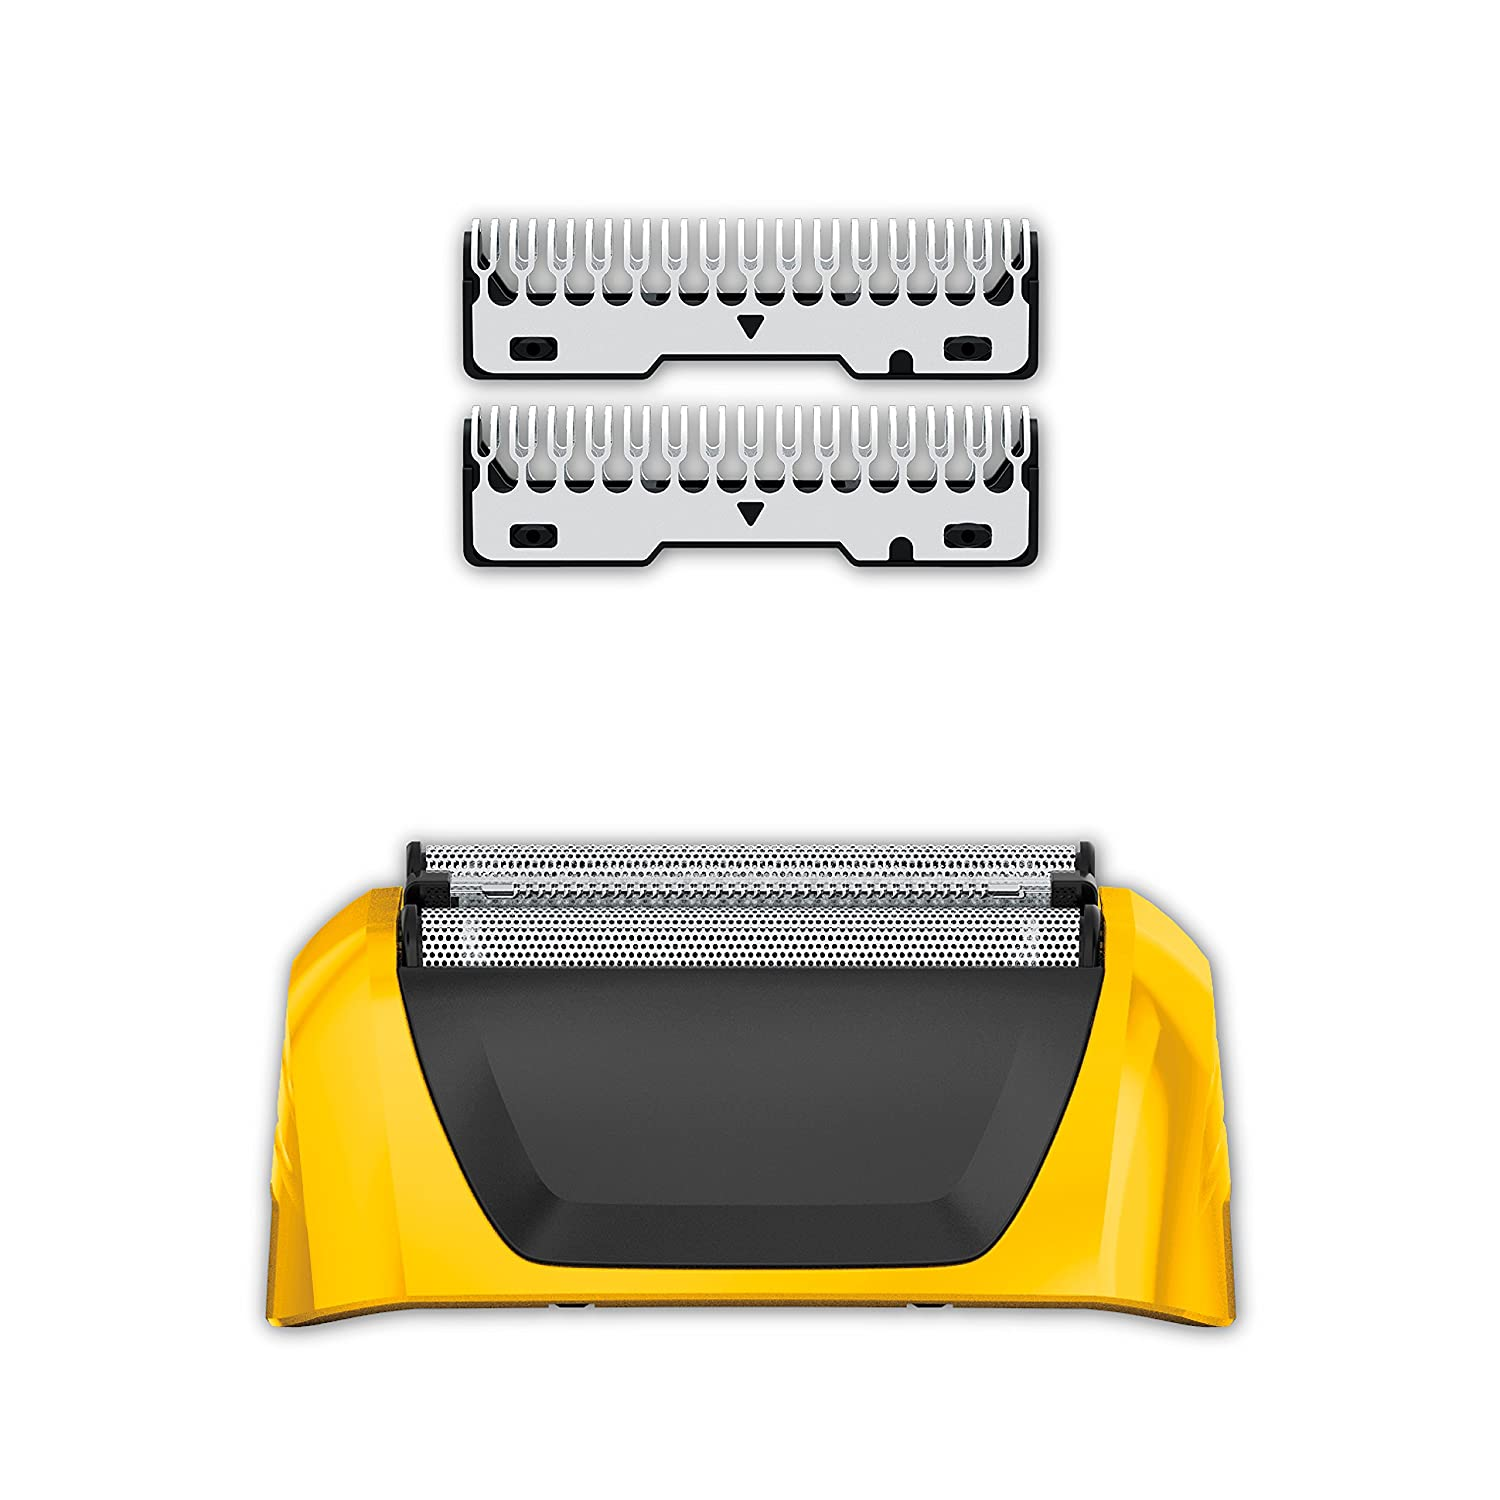 Wahl Yellow Lifeproof Shaver Replacement Foils, Cutters and Head for 7061 Series, 7045-100 Wahl Clipper Corp